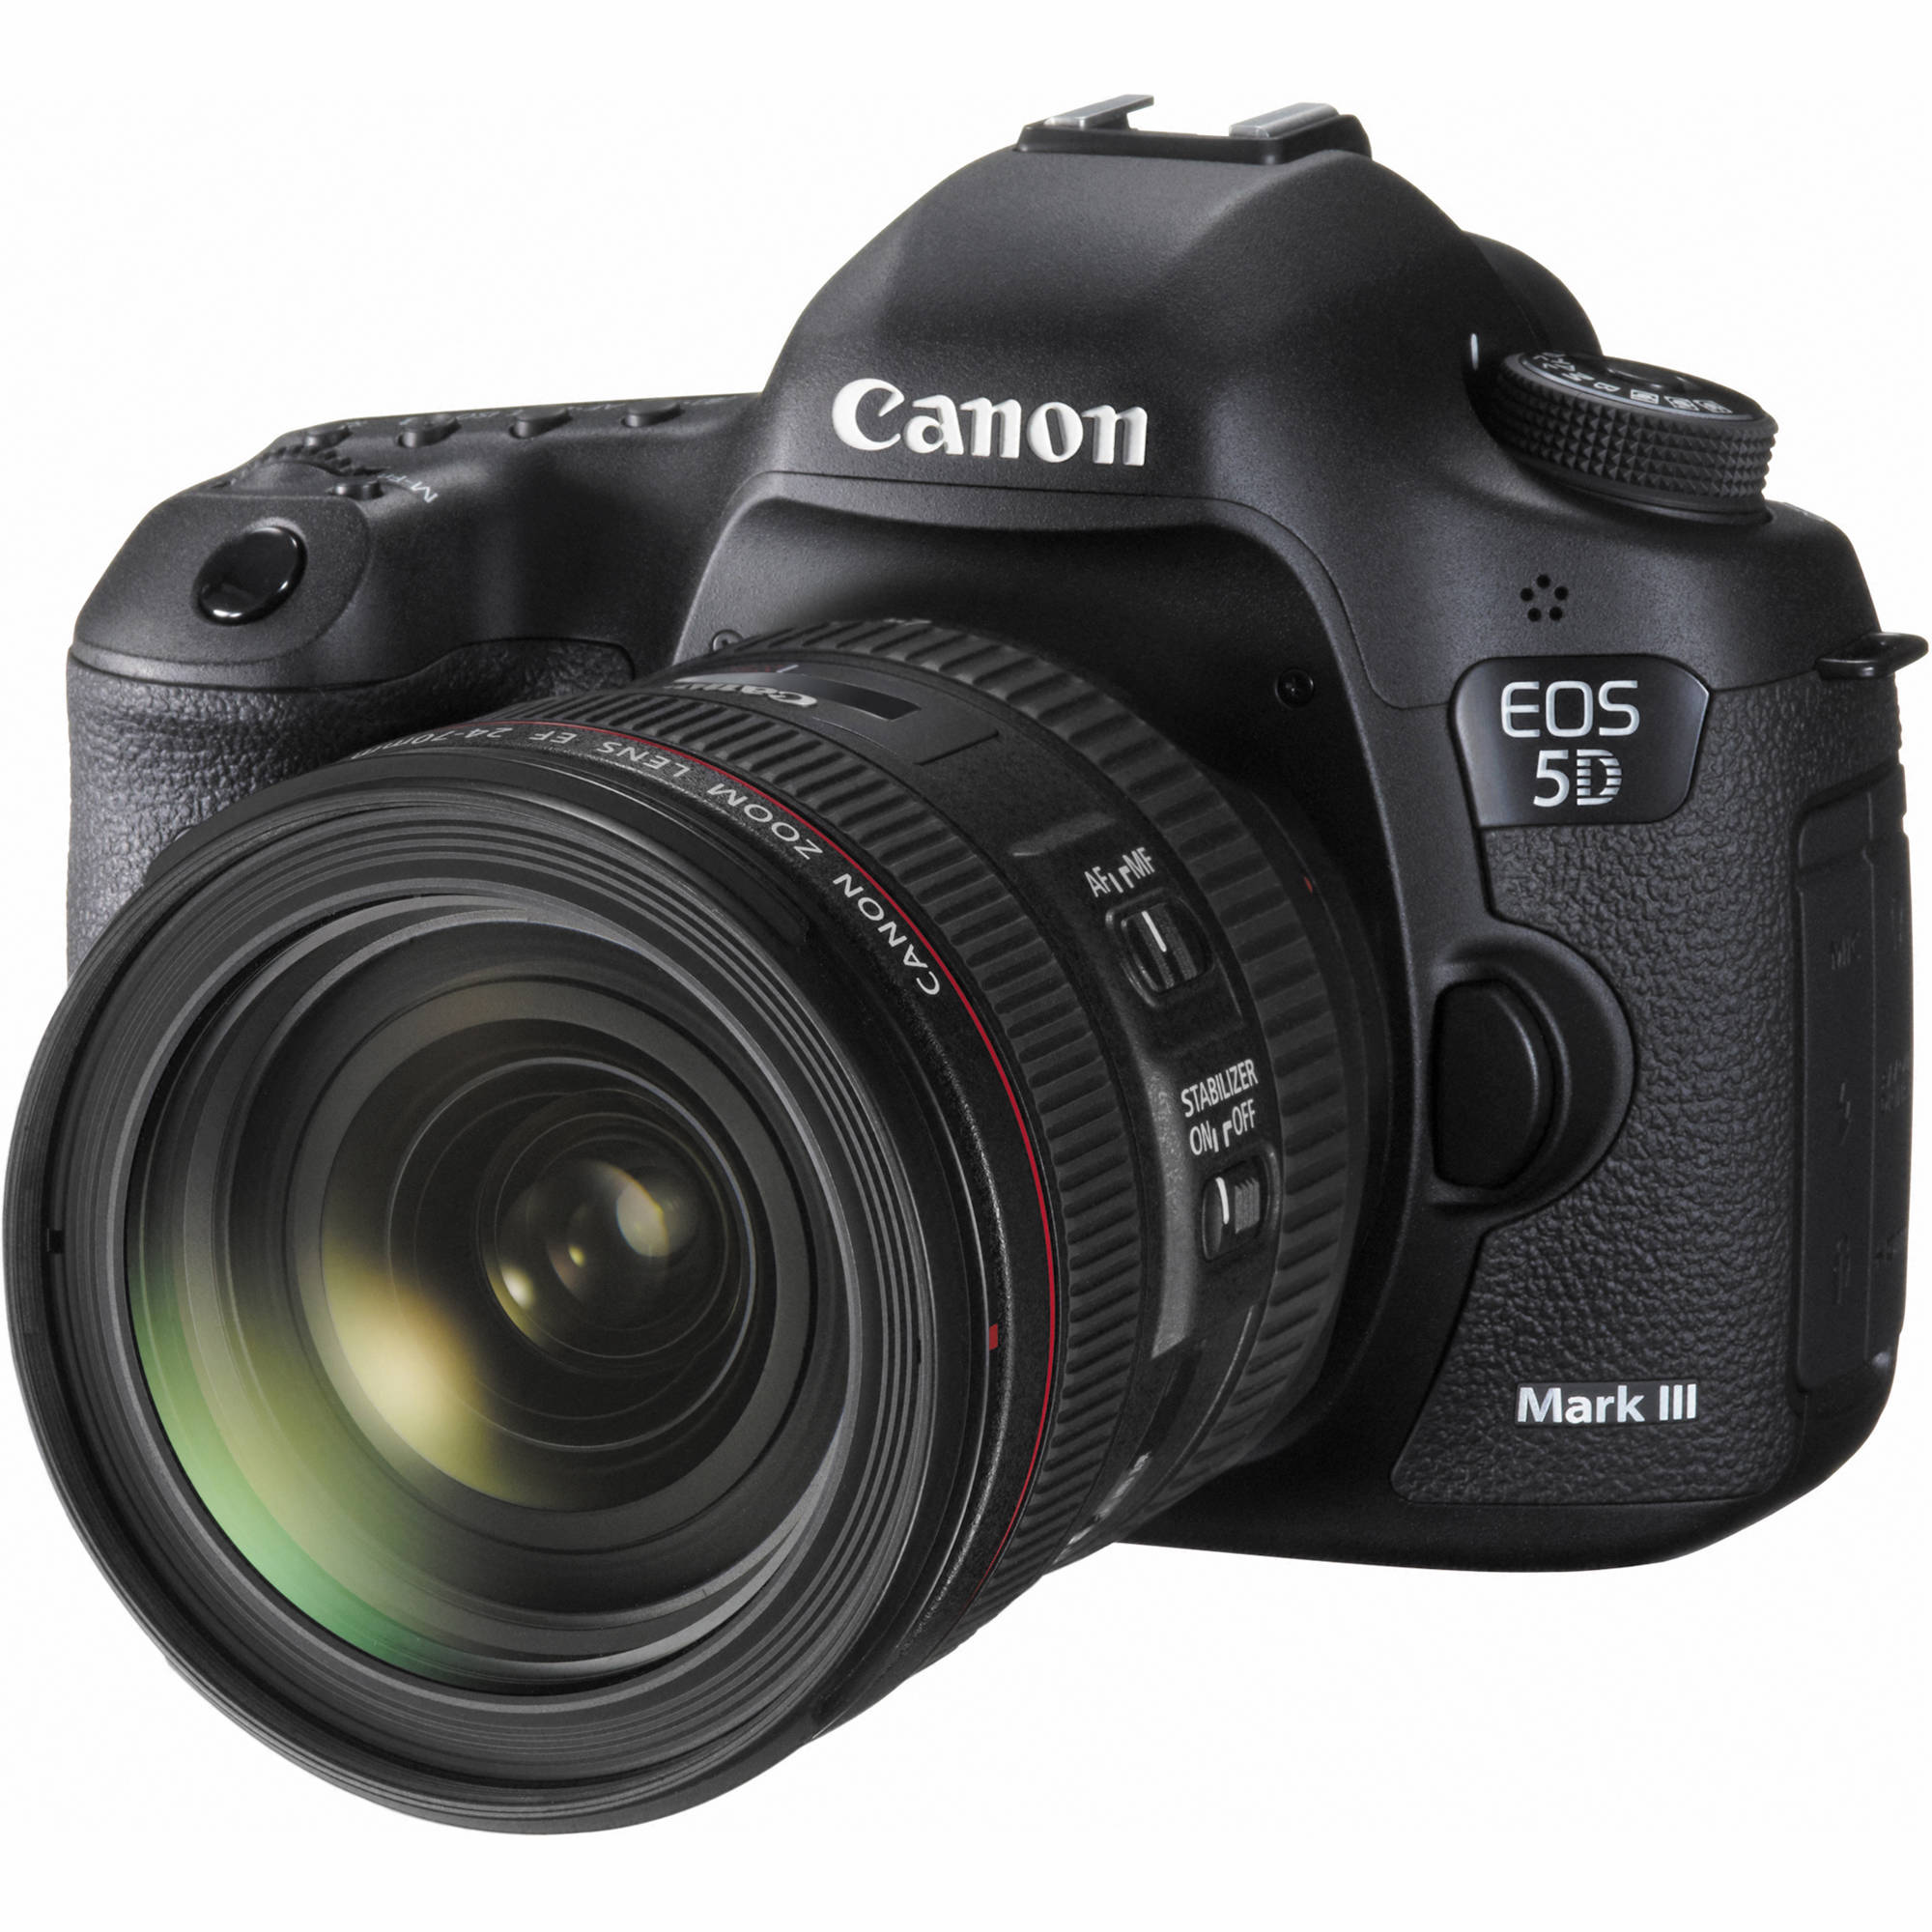 canon eos 5d mark iii dslr camera with 24 70mm lens